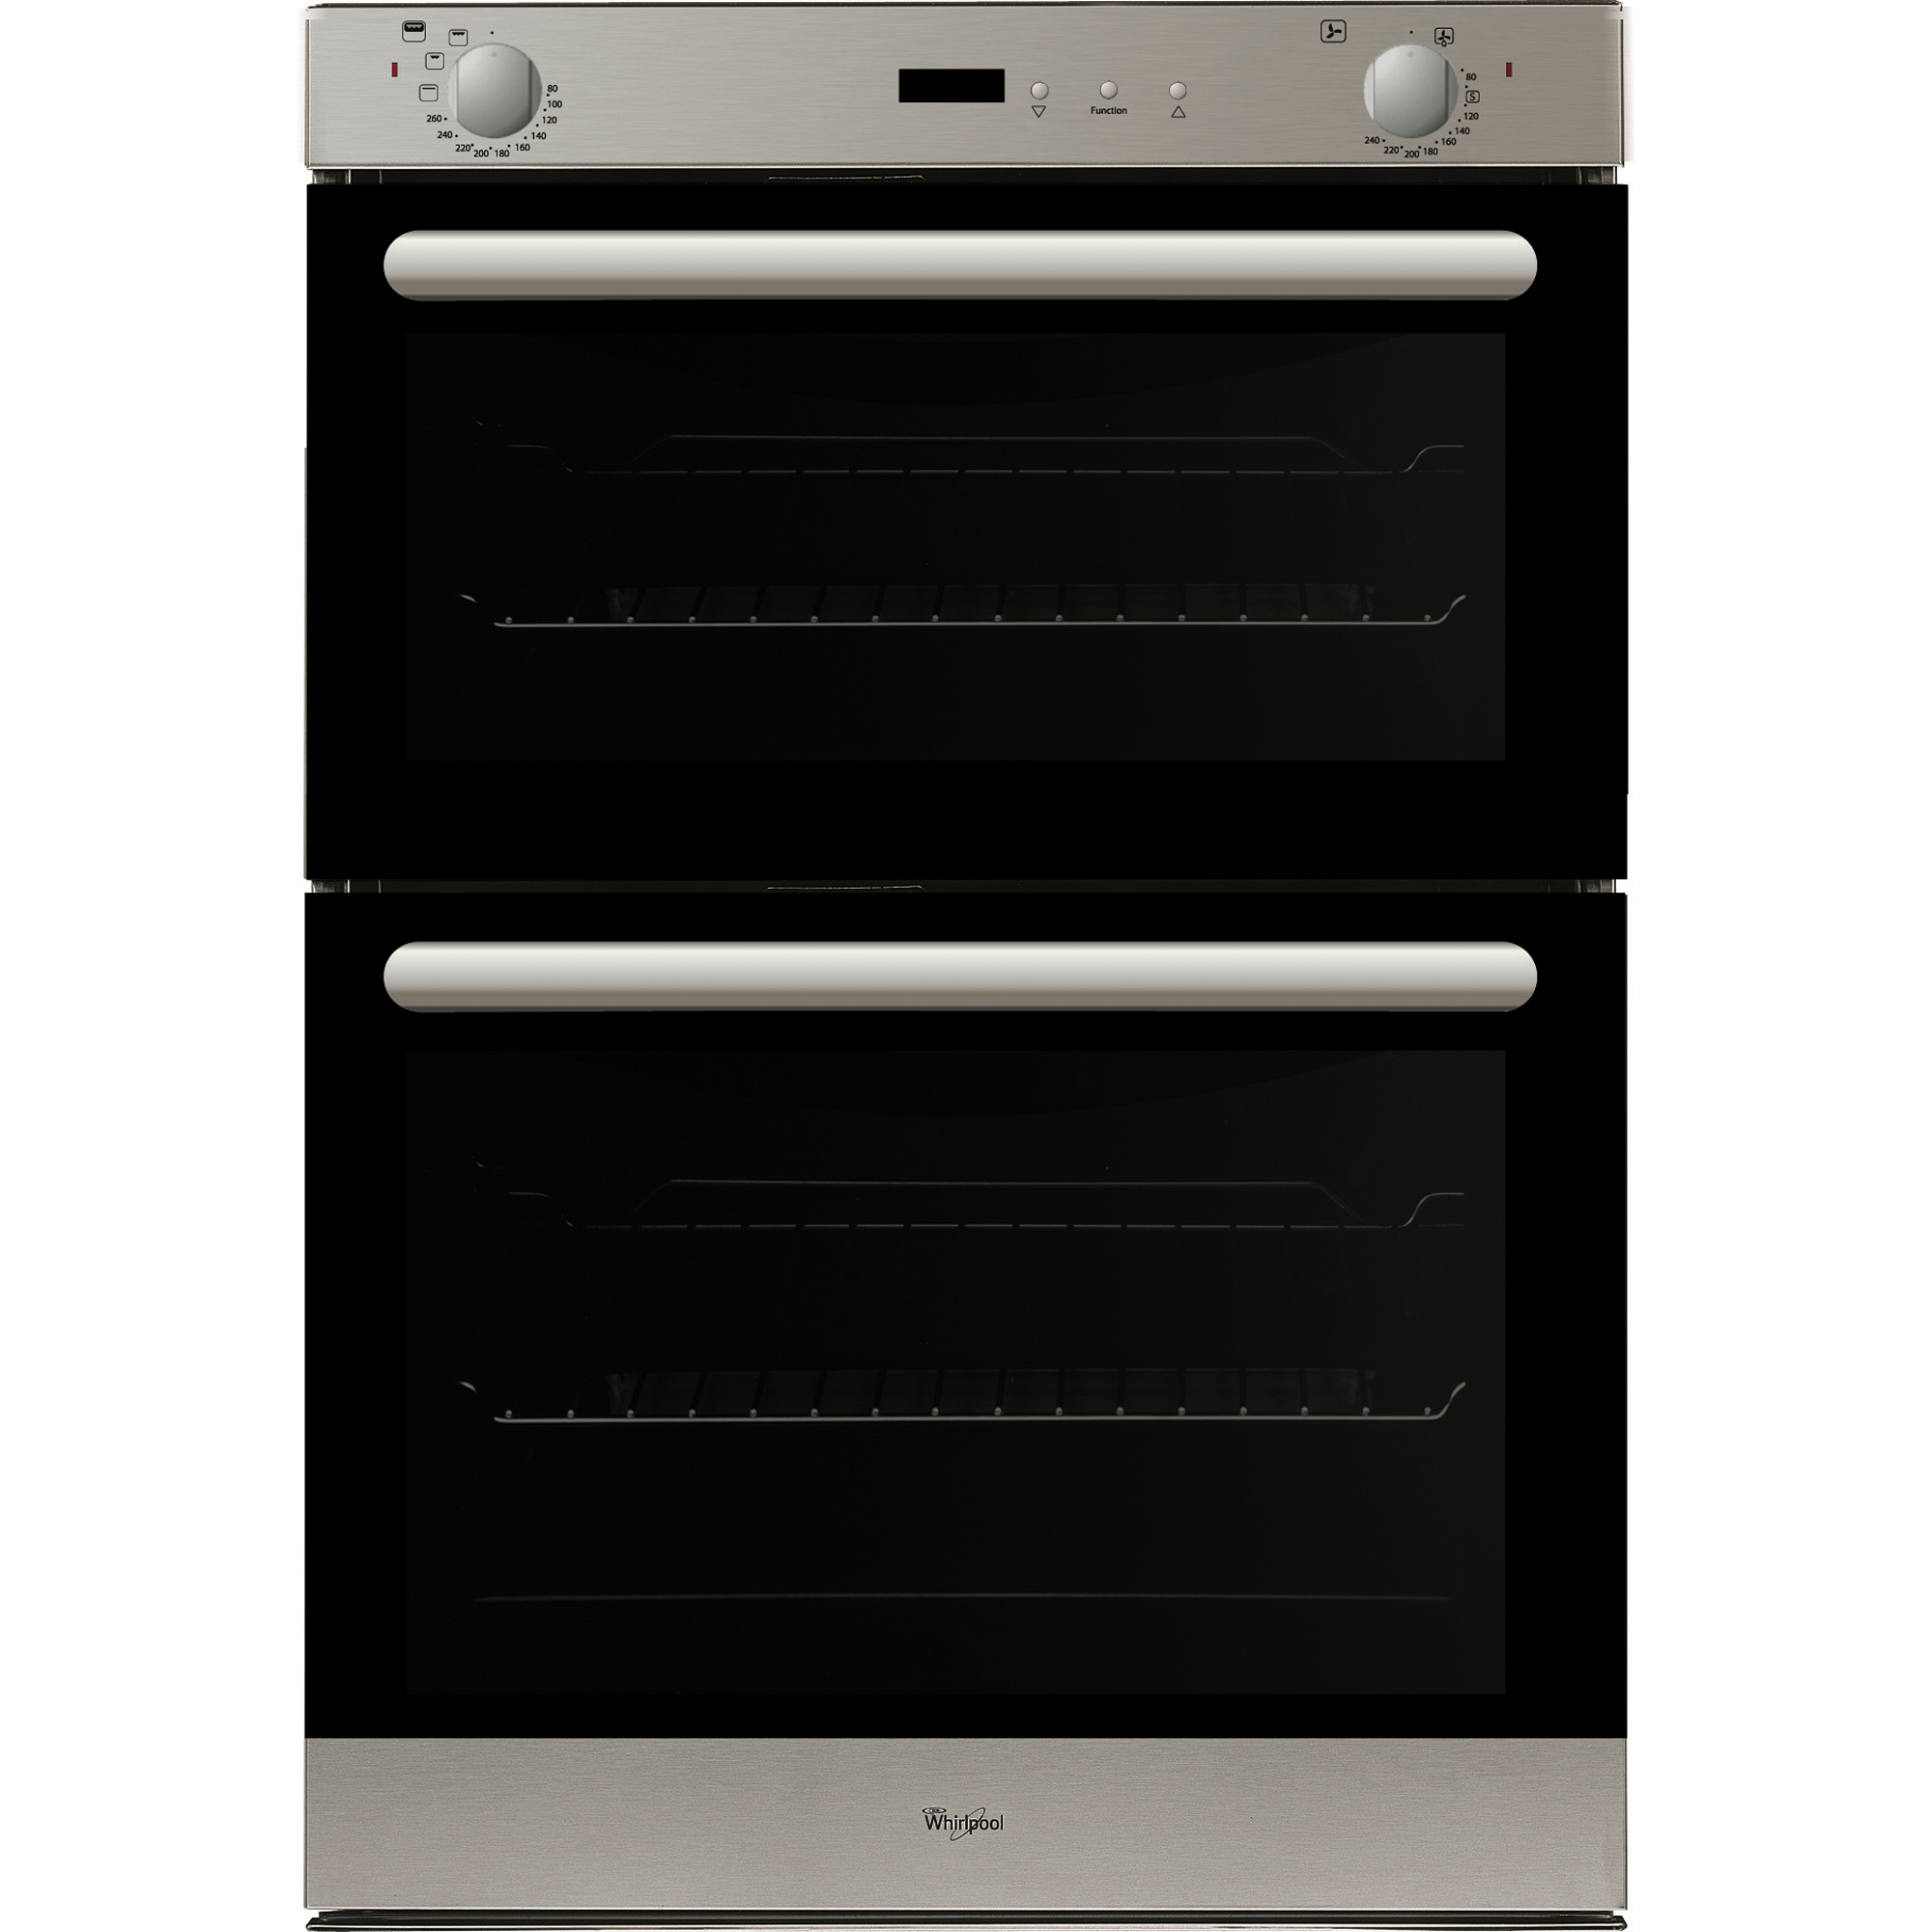 Whirlpool oven whirlpool gas oven troubleshooting - Whirlpool problems ...